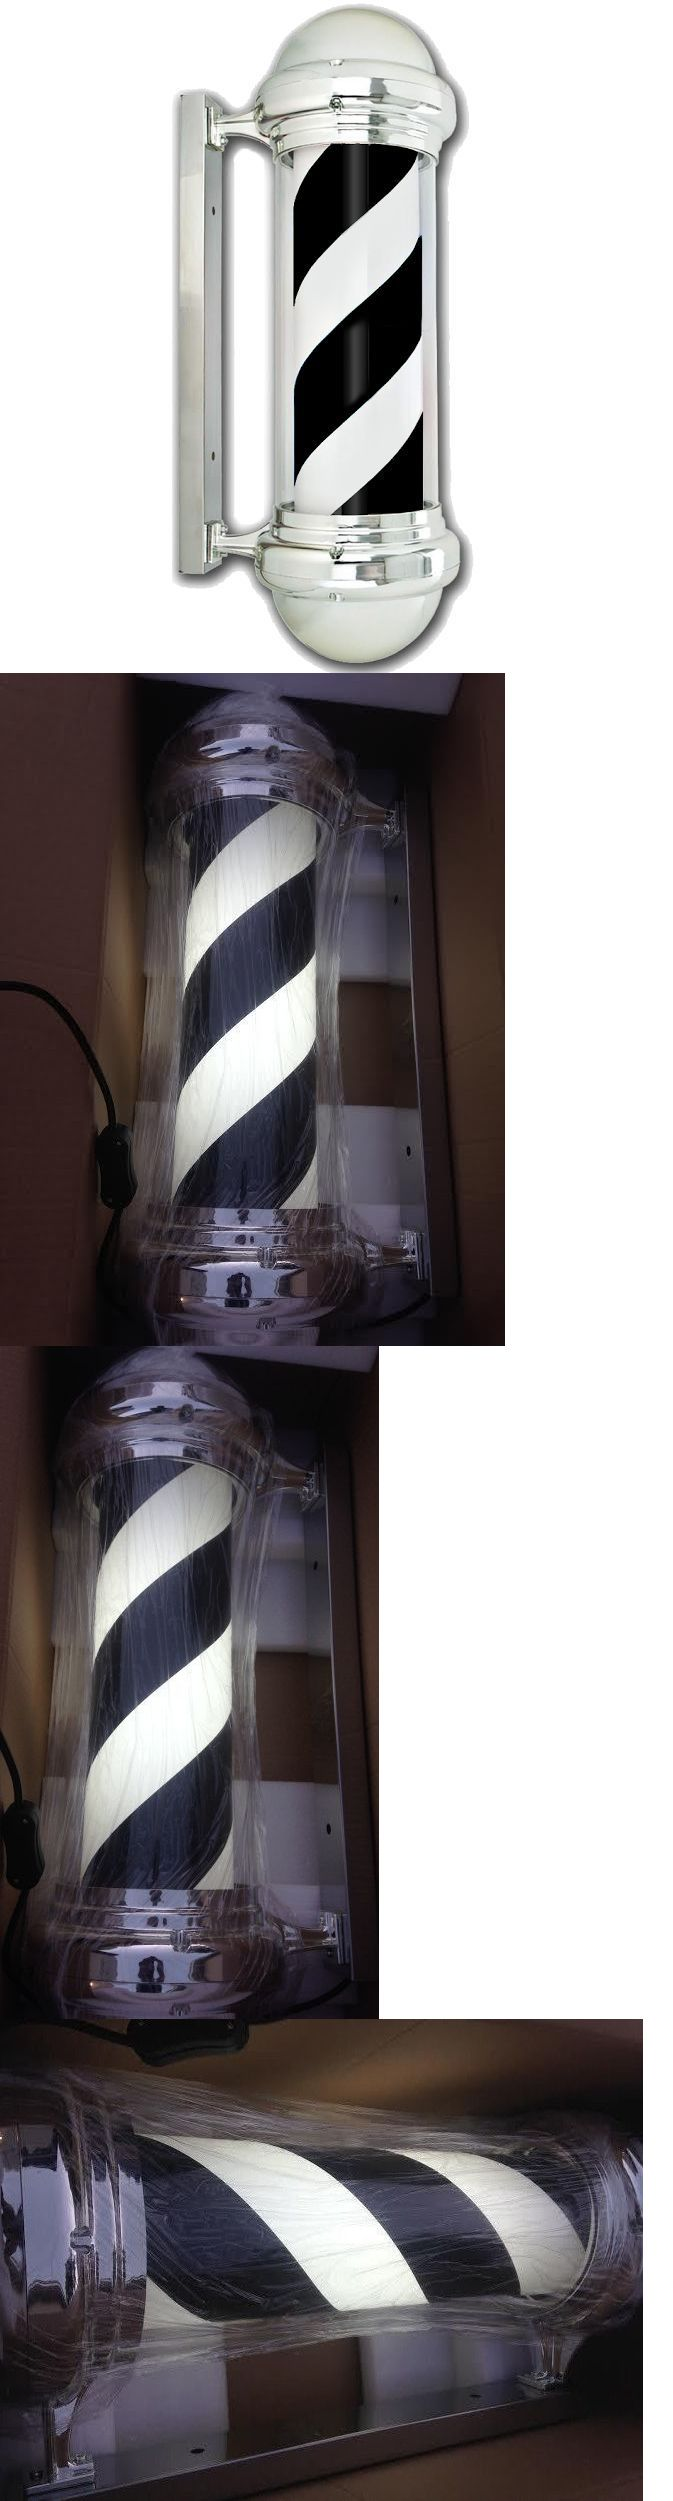 Other Salon and Spa Equipment: Led Barber Pole Black And White Chair Salon Shop Light Sign -> BUY IT NOW ONLY: $199.99 on eBay!